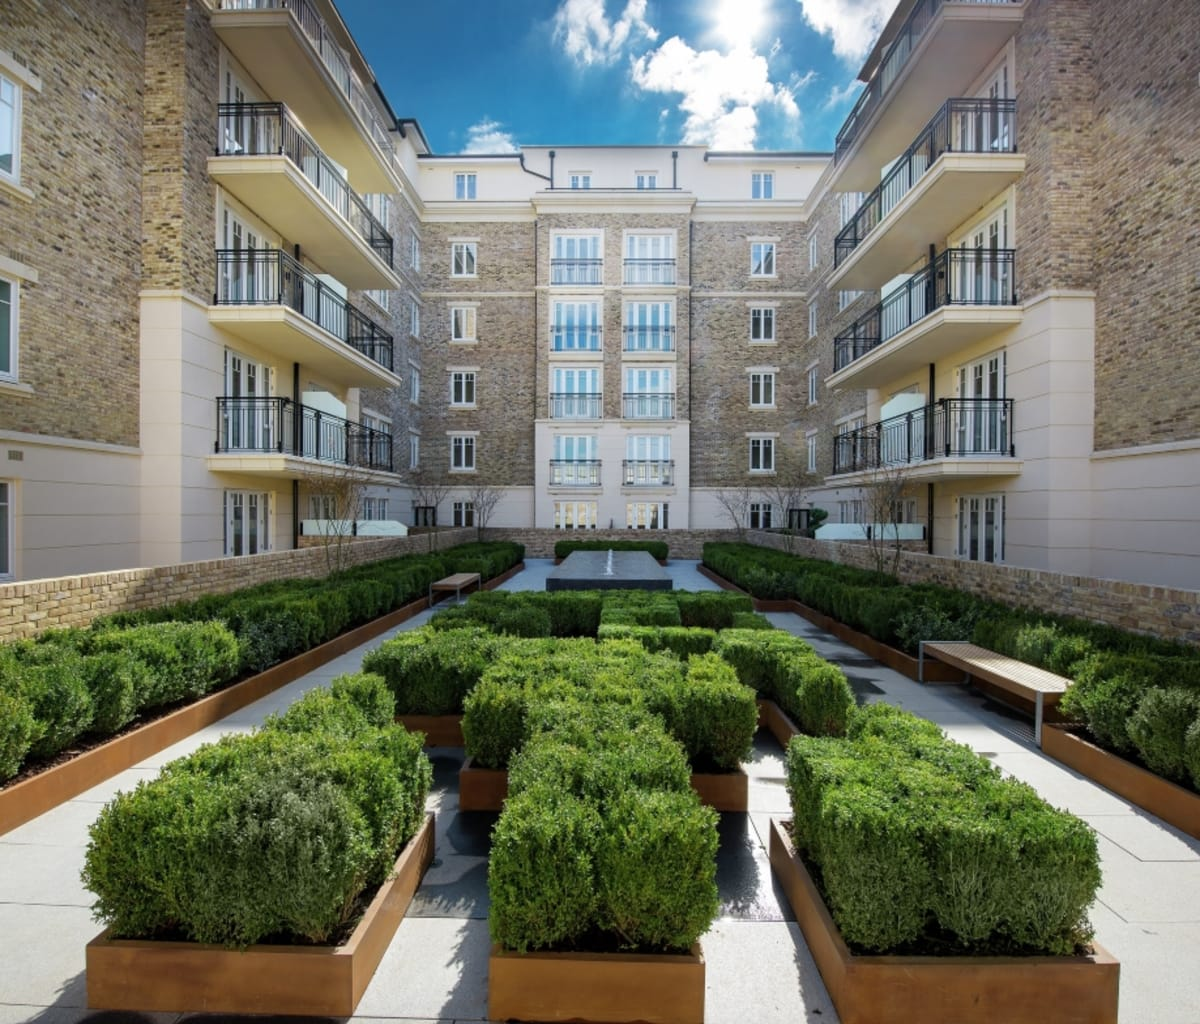 Apartments with cast stone detailing overlooking a landscaped garden